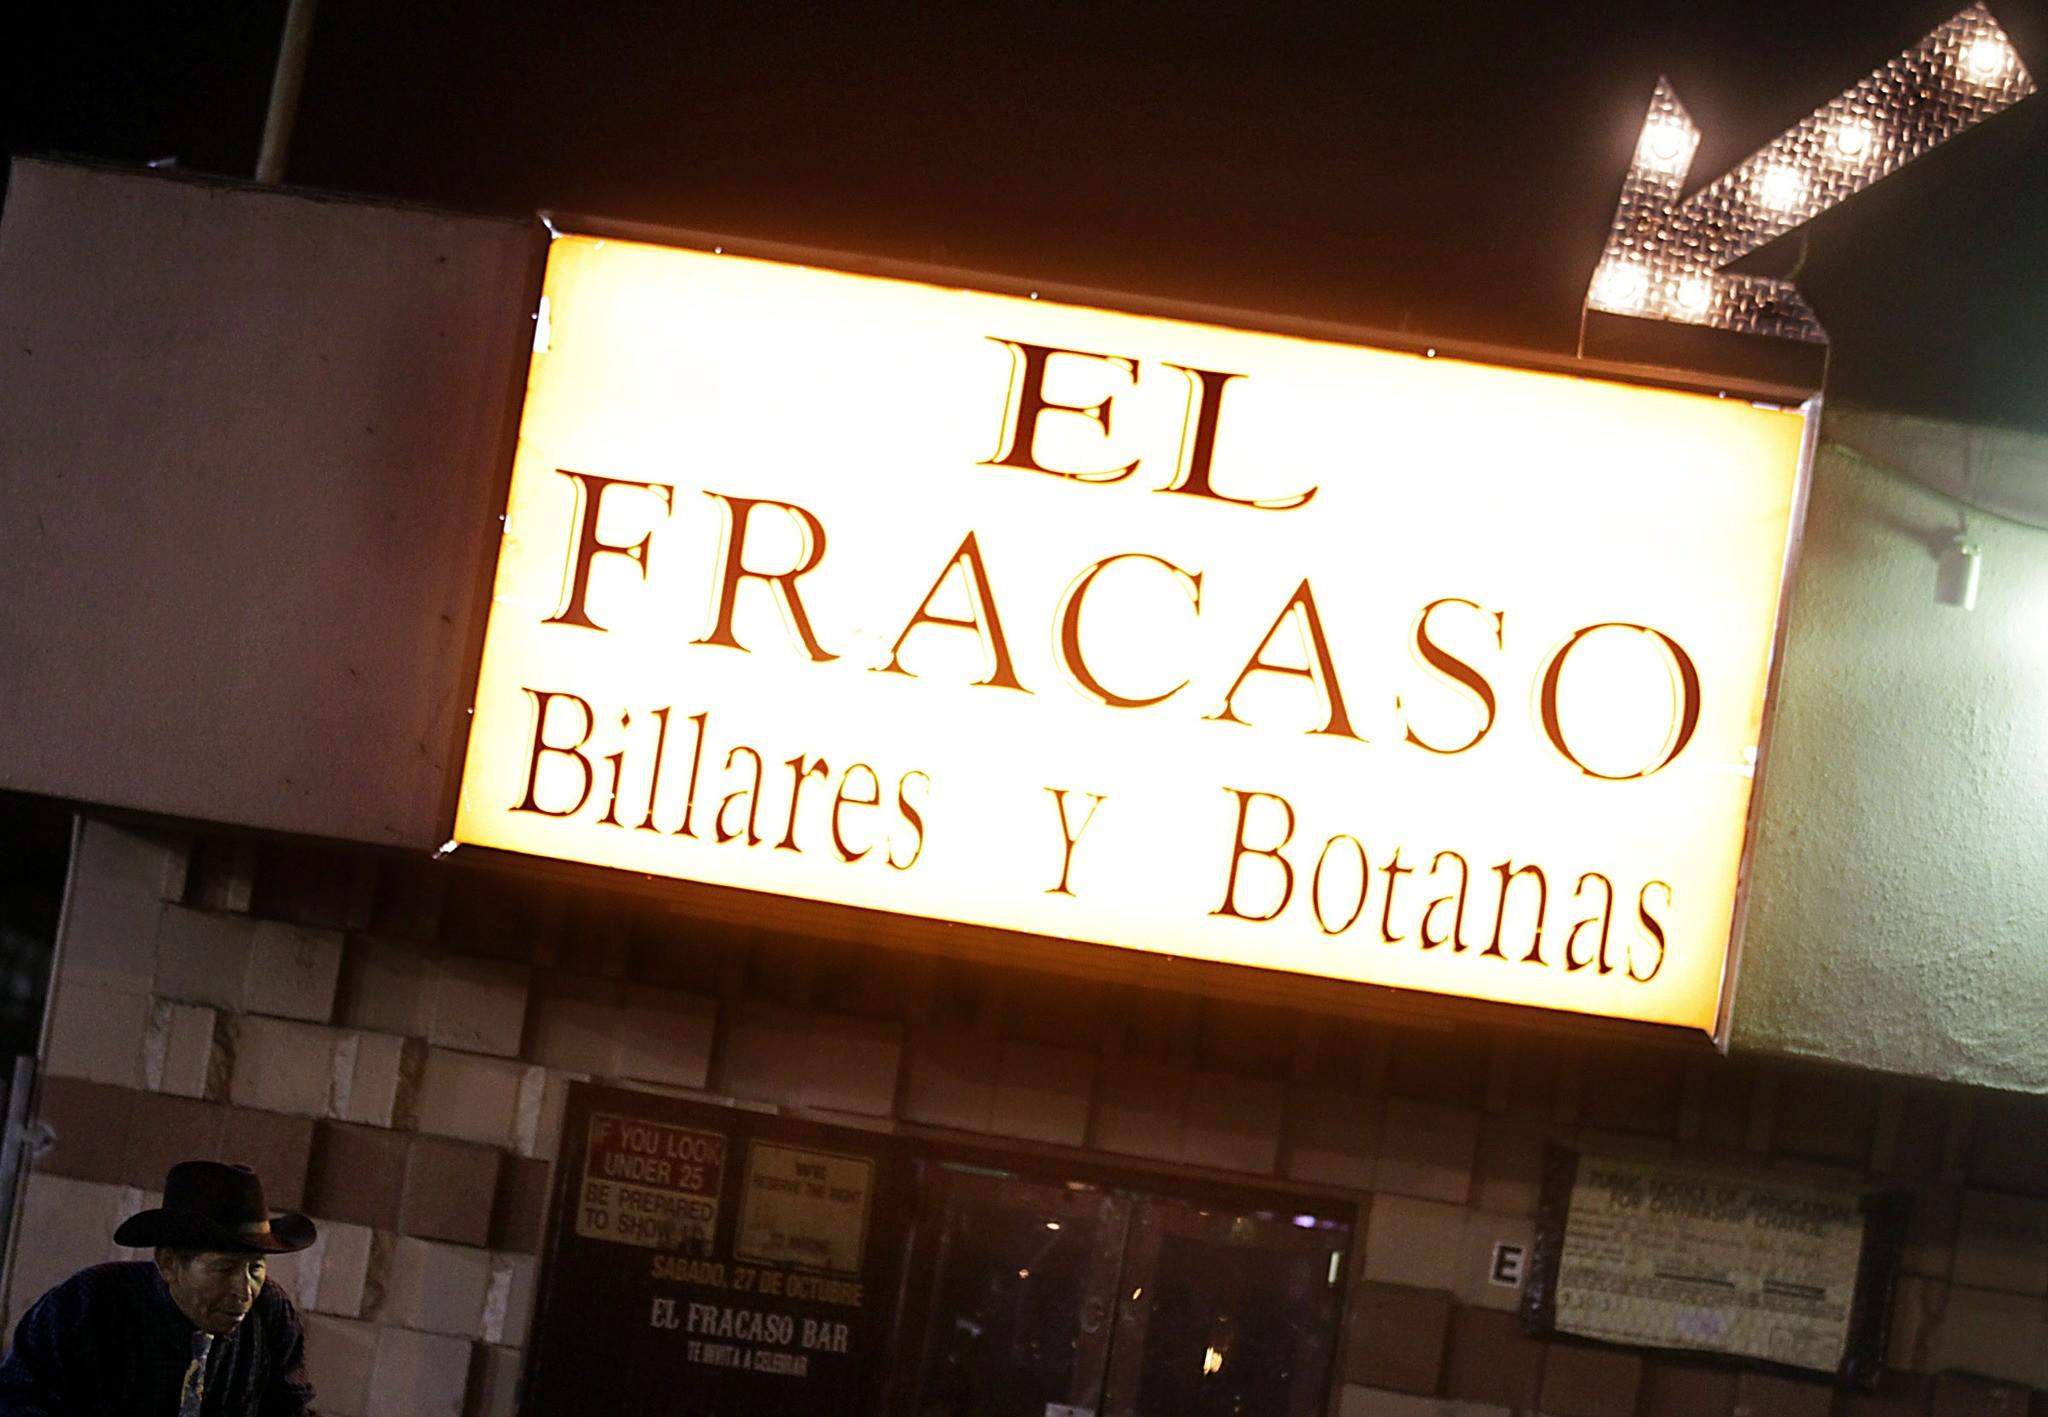 About four miles south of Disneyland, in a Santa Ana strip mall on the east side of Harbor Boulevard, is a working-class Mexican bar with a tongue-in-cheek name: El Fracaso, or